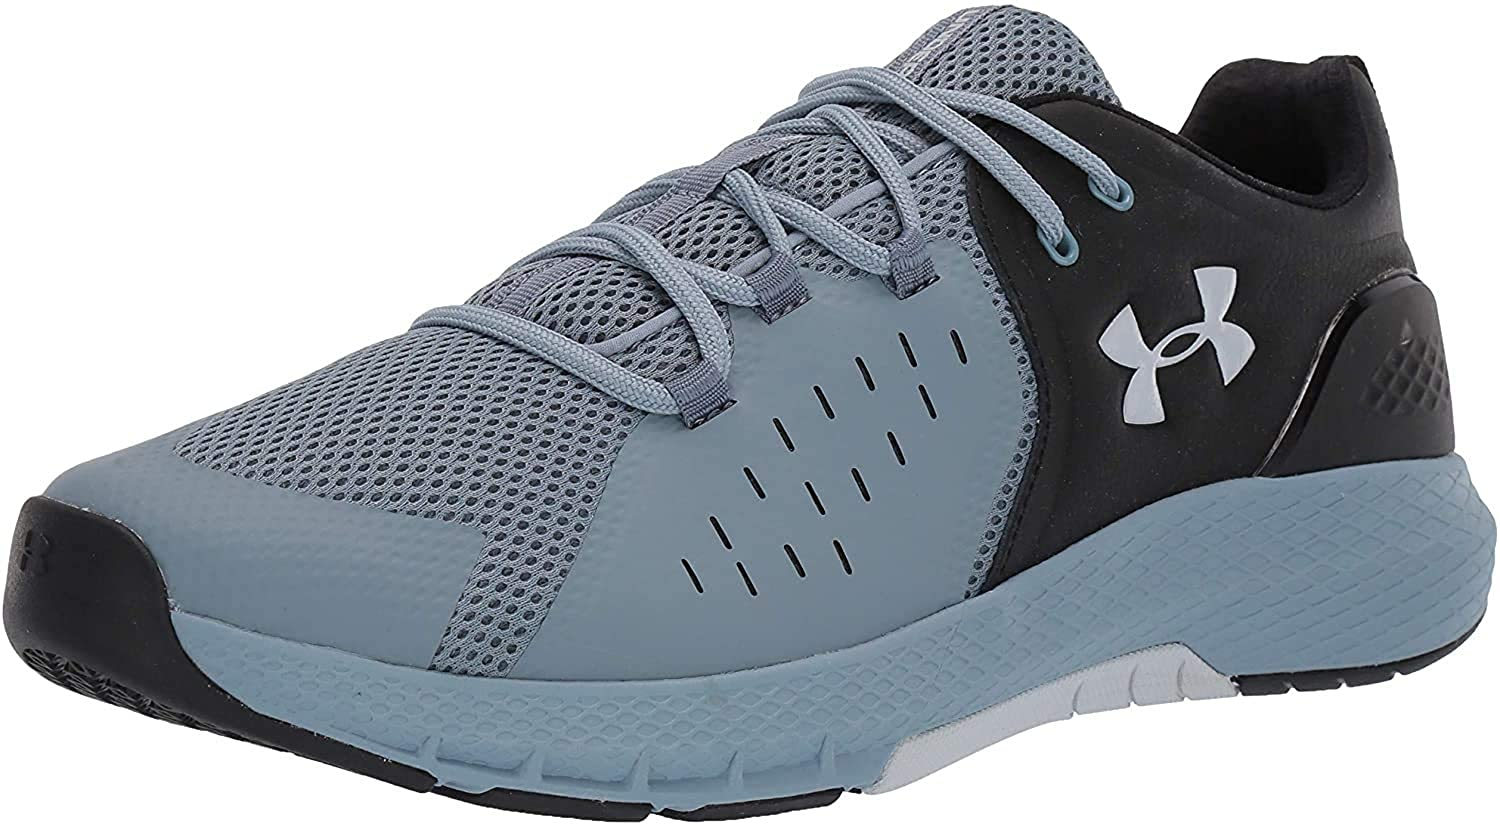 Under Armour Men's Charged Commit cross trainer